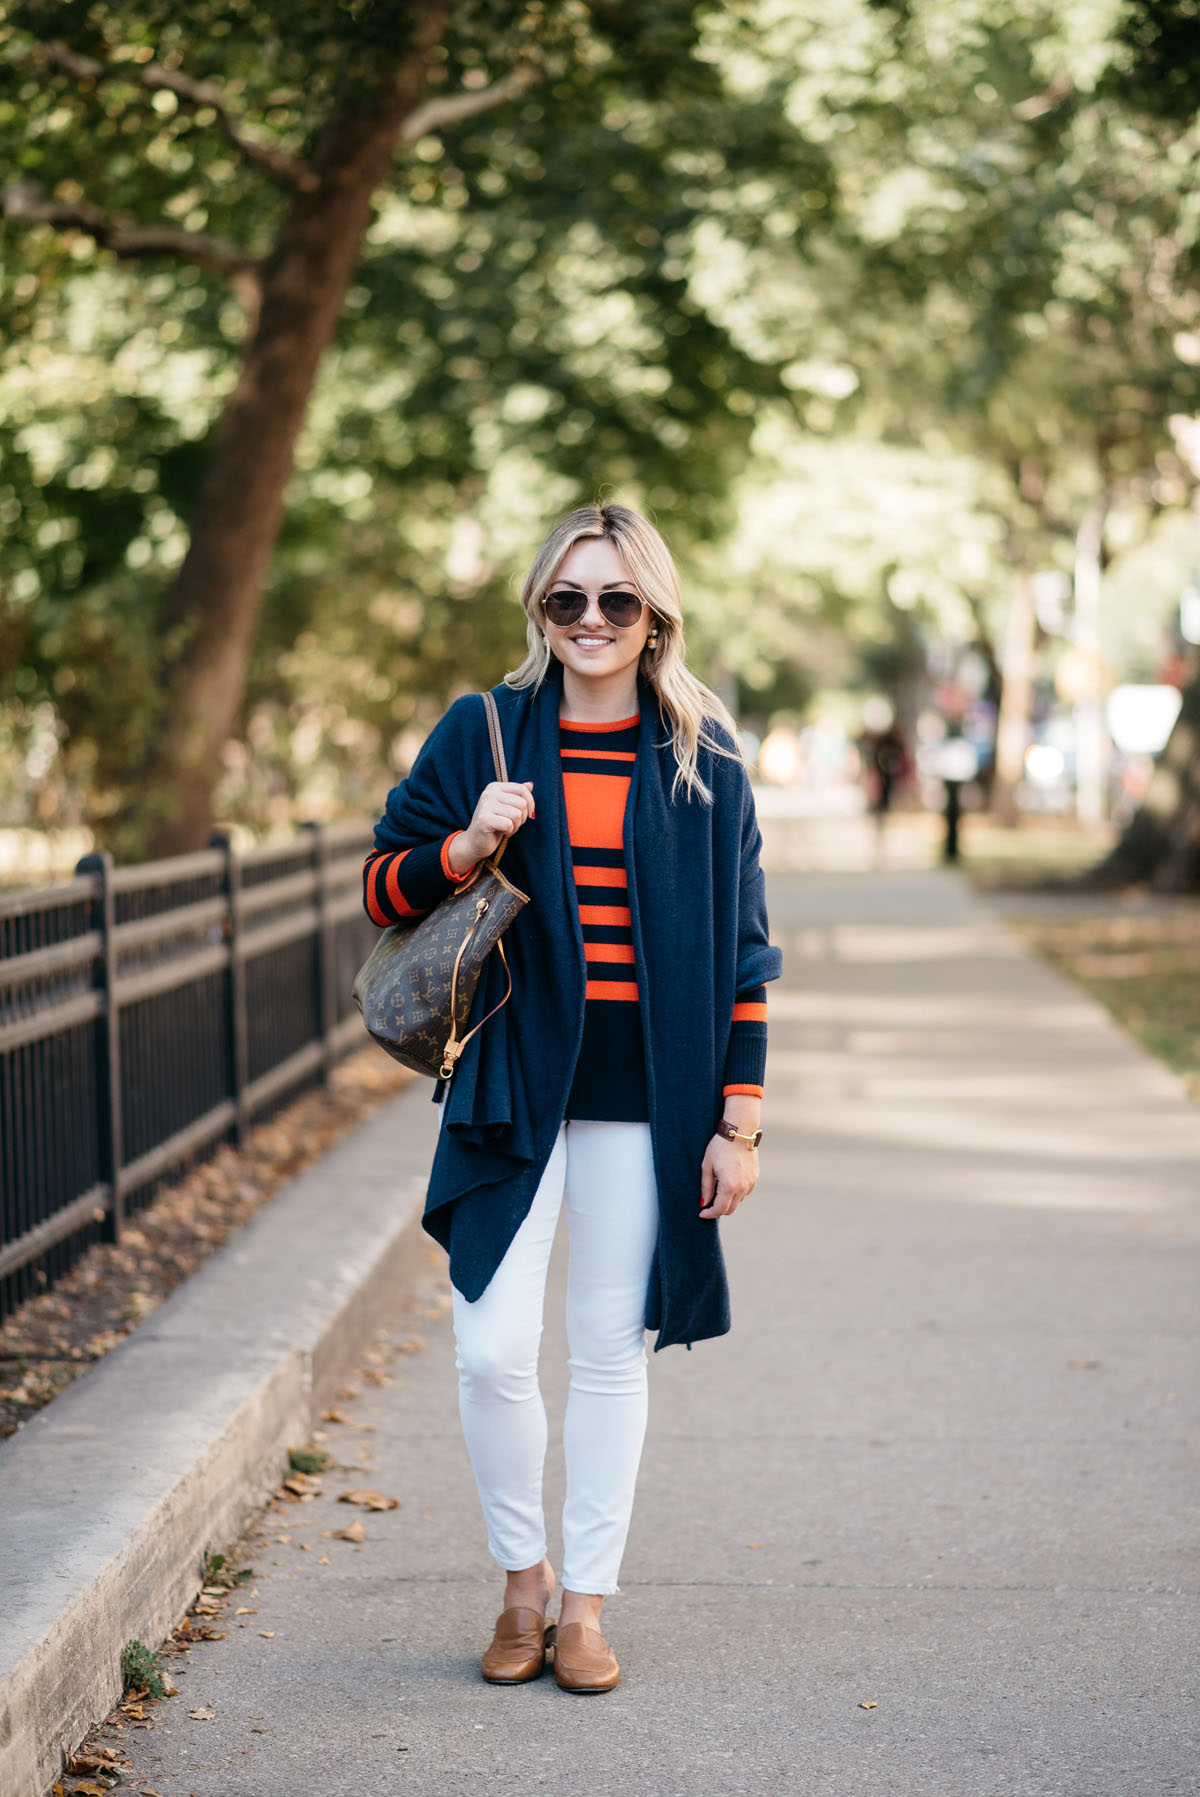 Chicago fashion and lifestyle blogger Bows & Sequins wearing a navy blue cashmere wrap, an orange and blue striped sweater, and white denim with Gucci aviators and Dune London leather loafers.